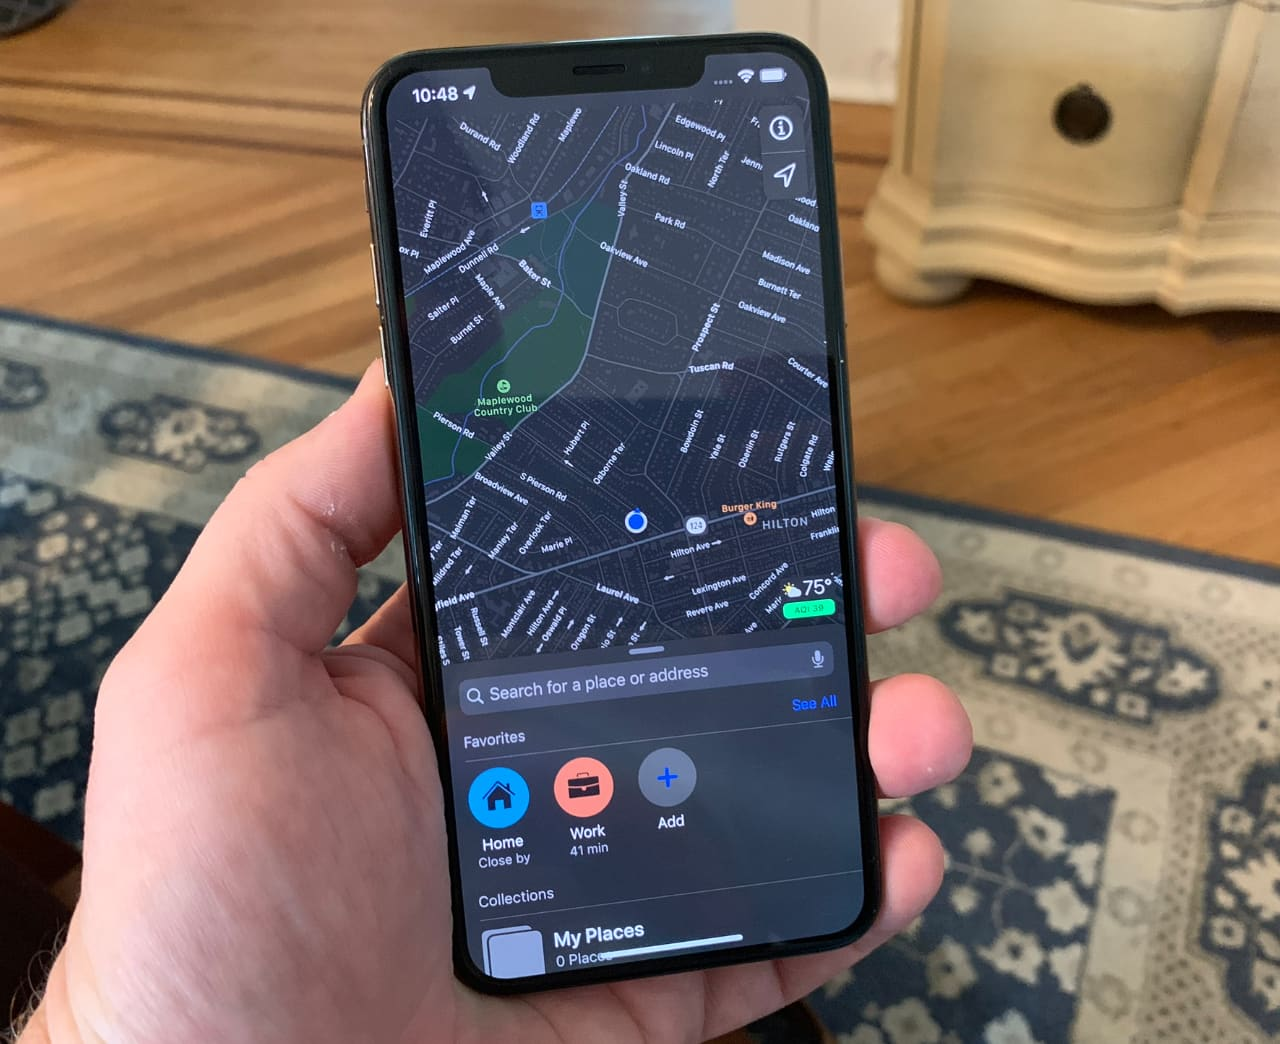 Here's a first look at 'dark mode' on the iPhone